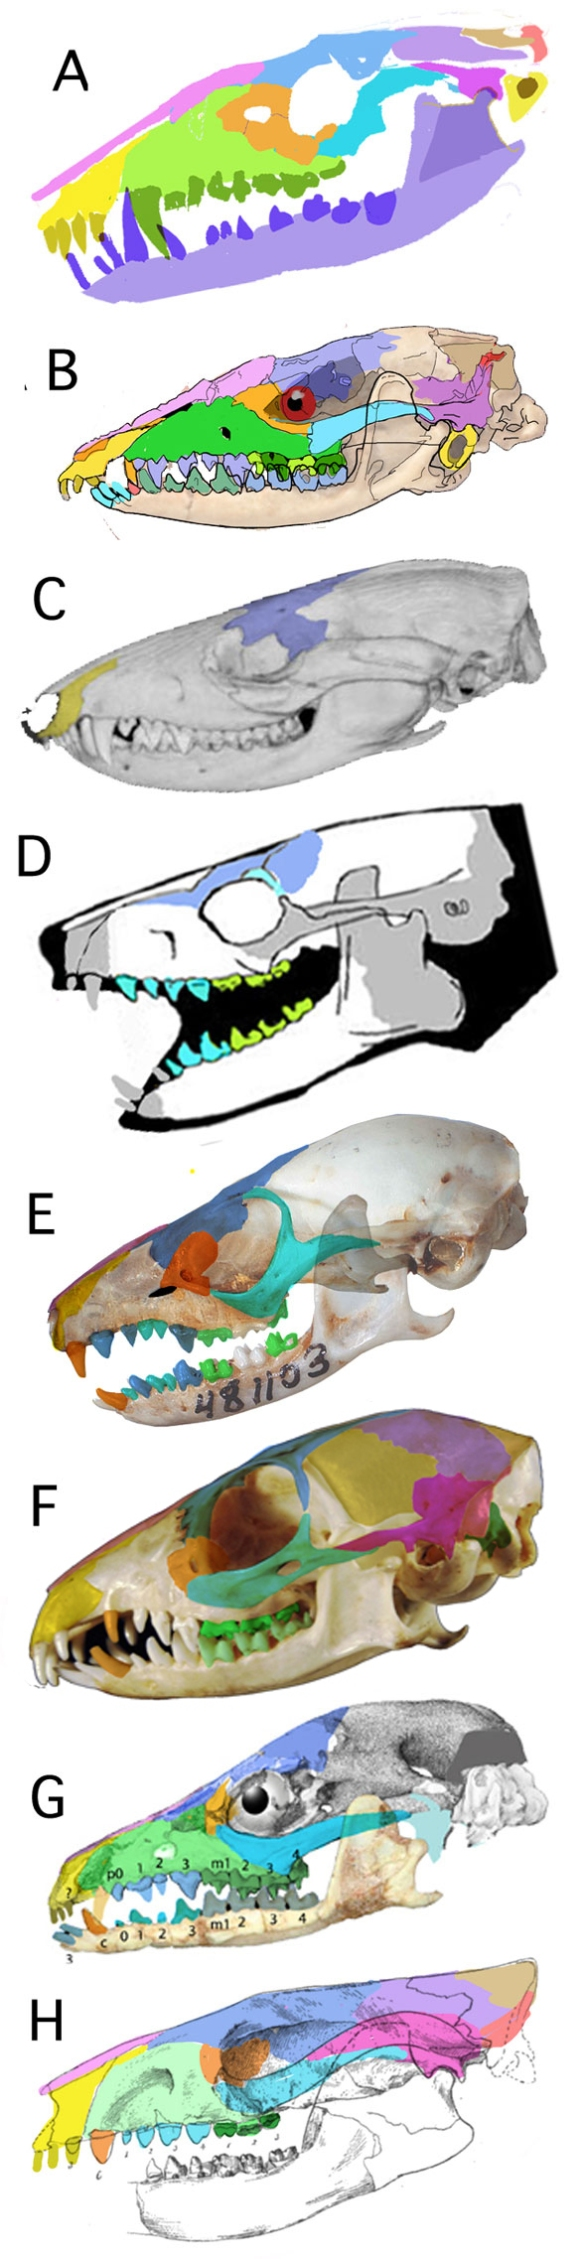 Figure 1. Can you guess which of these taxa evolved to become a human? a killer whale? a rabbit? a giraffe?